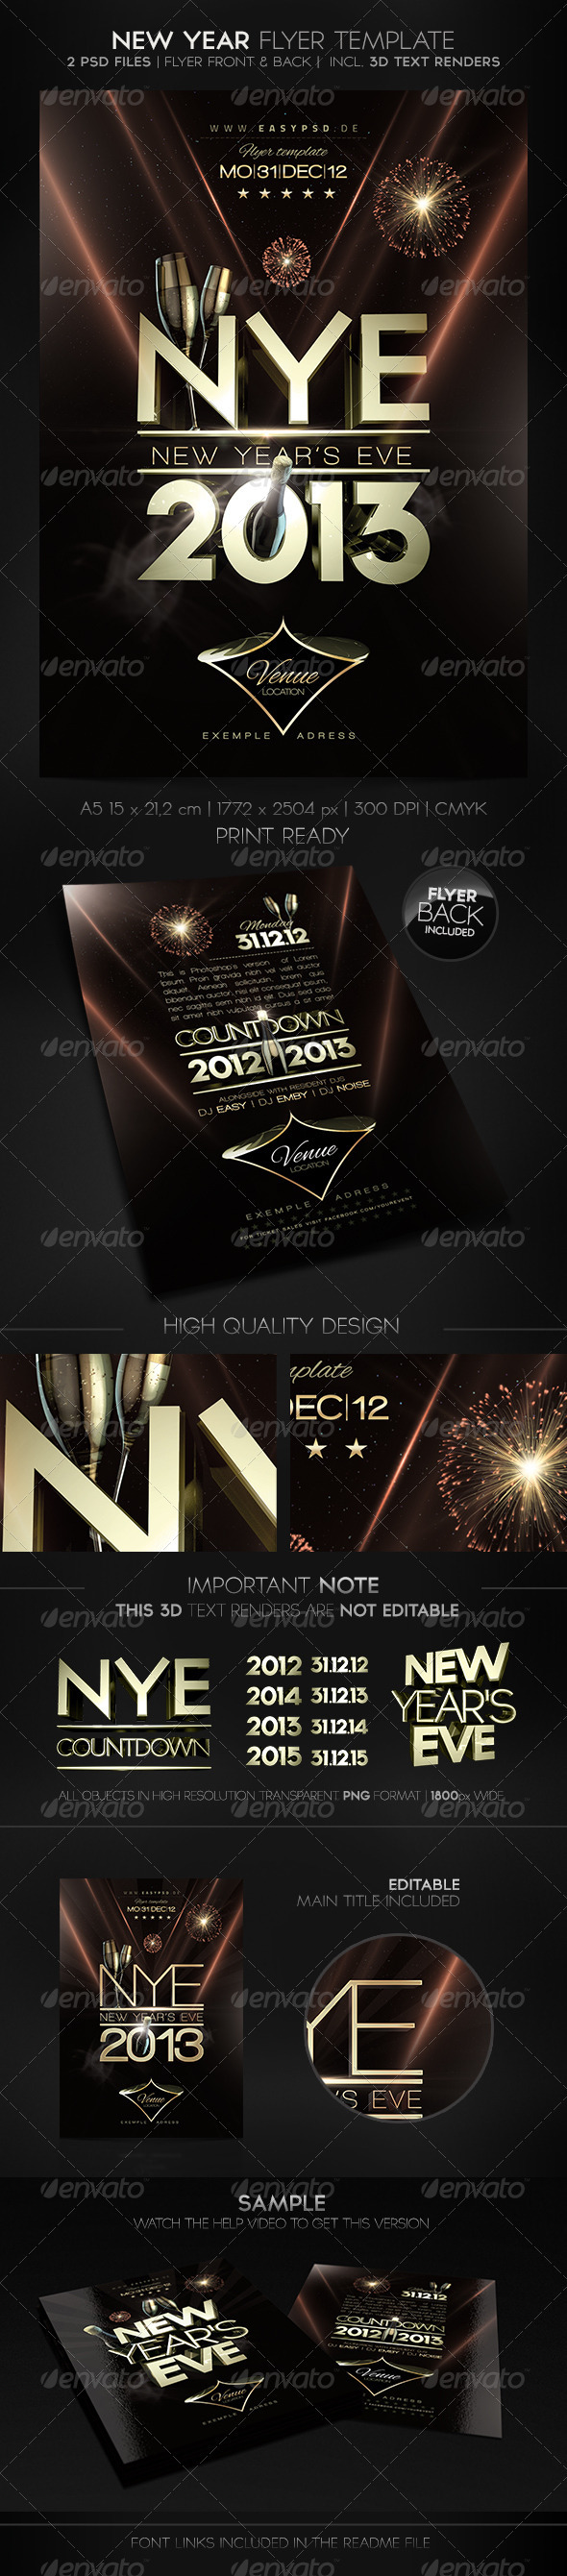 New Year Flyer Template - Holidays Events